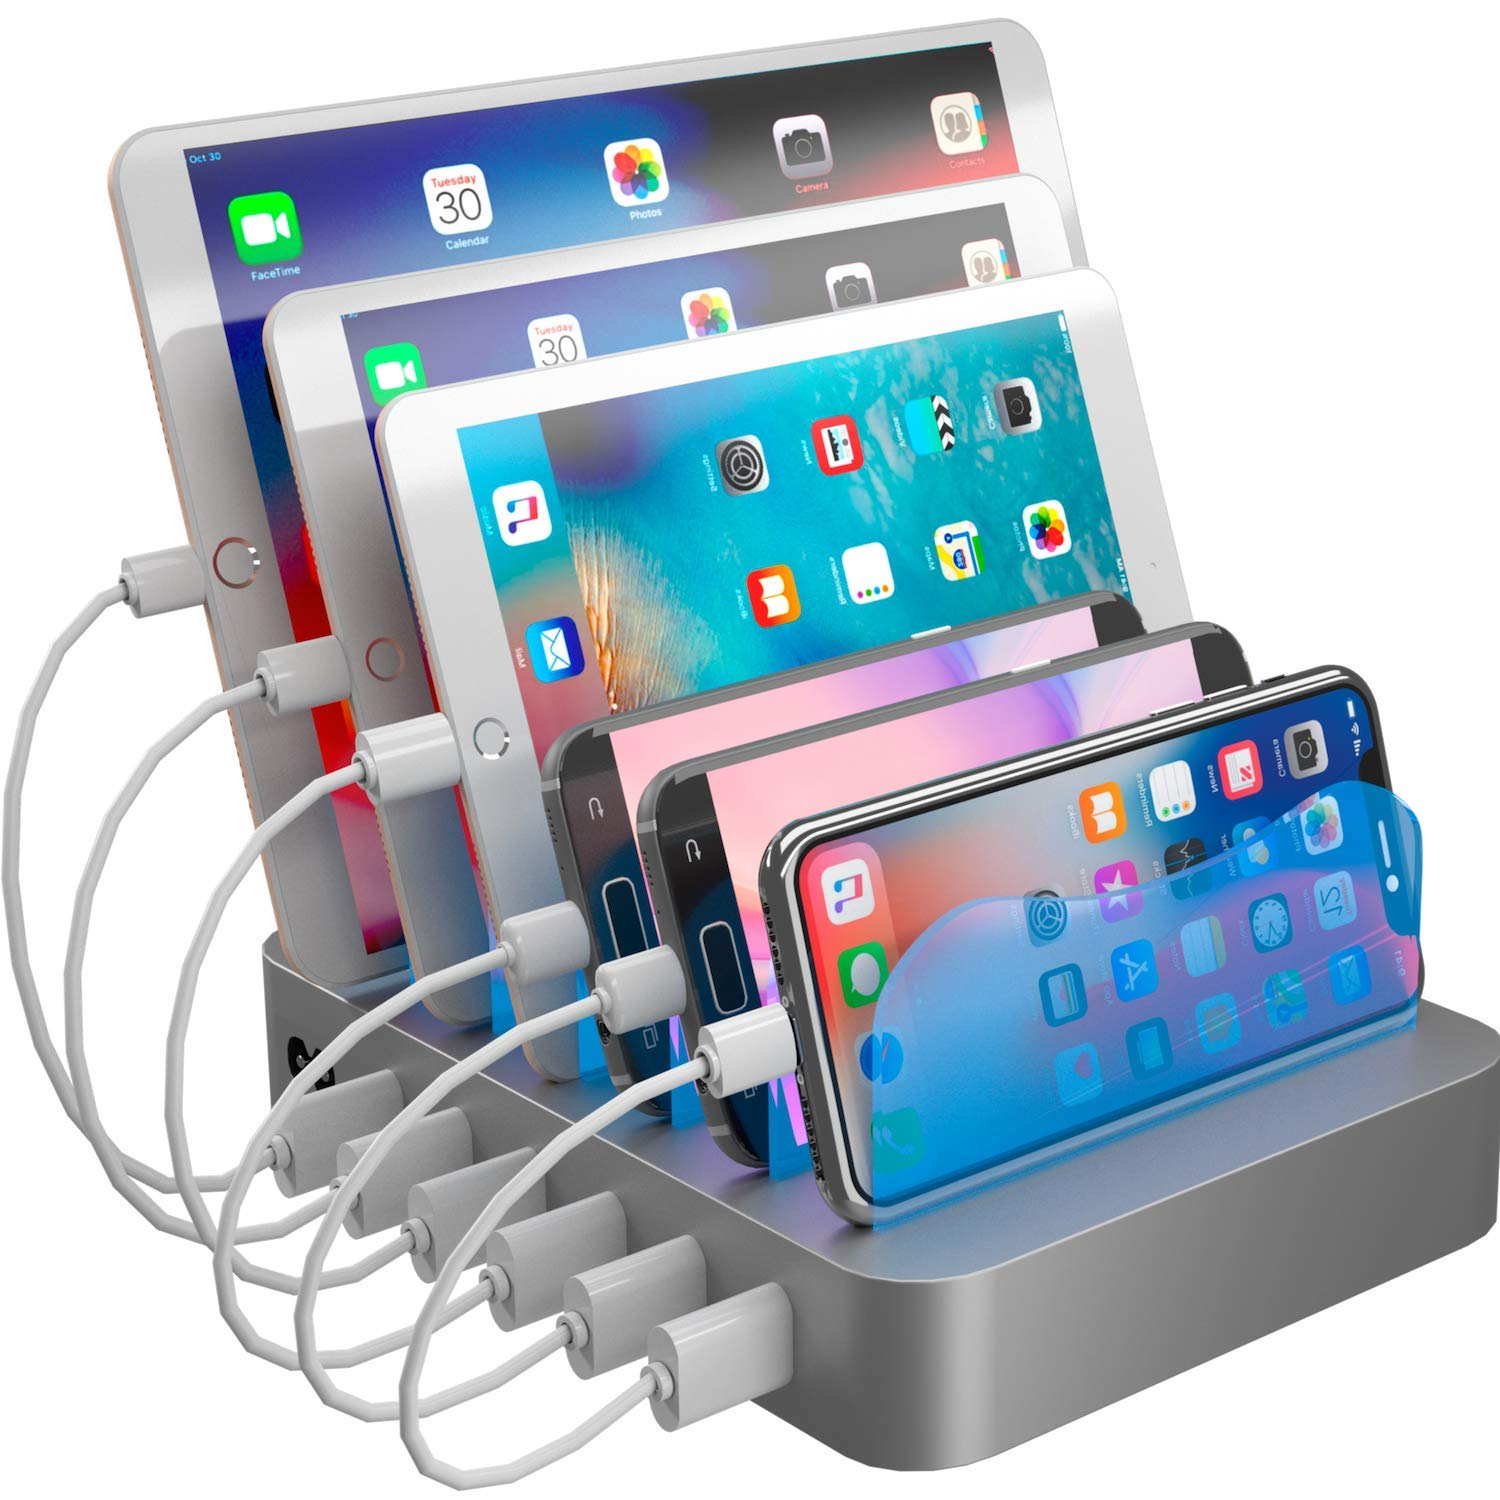 Hercules Tuff Charging Station Organizer for Multiple Devices - 6 Short Mixed Cables Included for Cell Phones  Smart Phones  Tablets  and Other Electronics